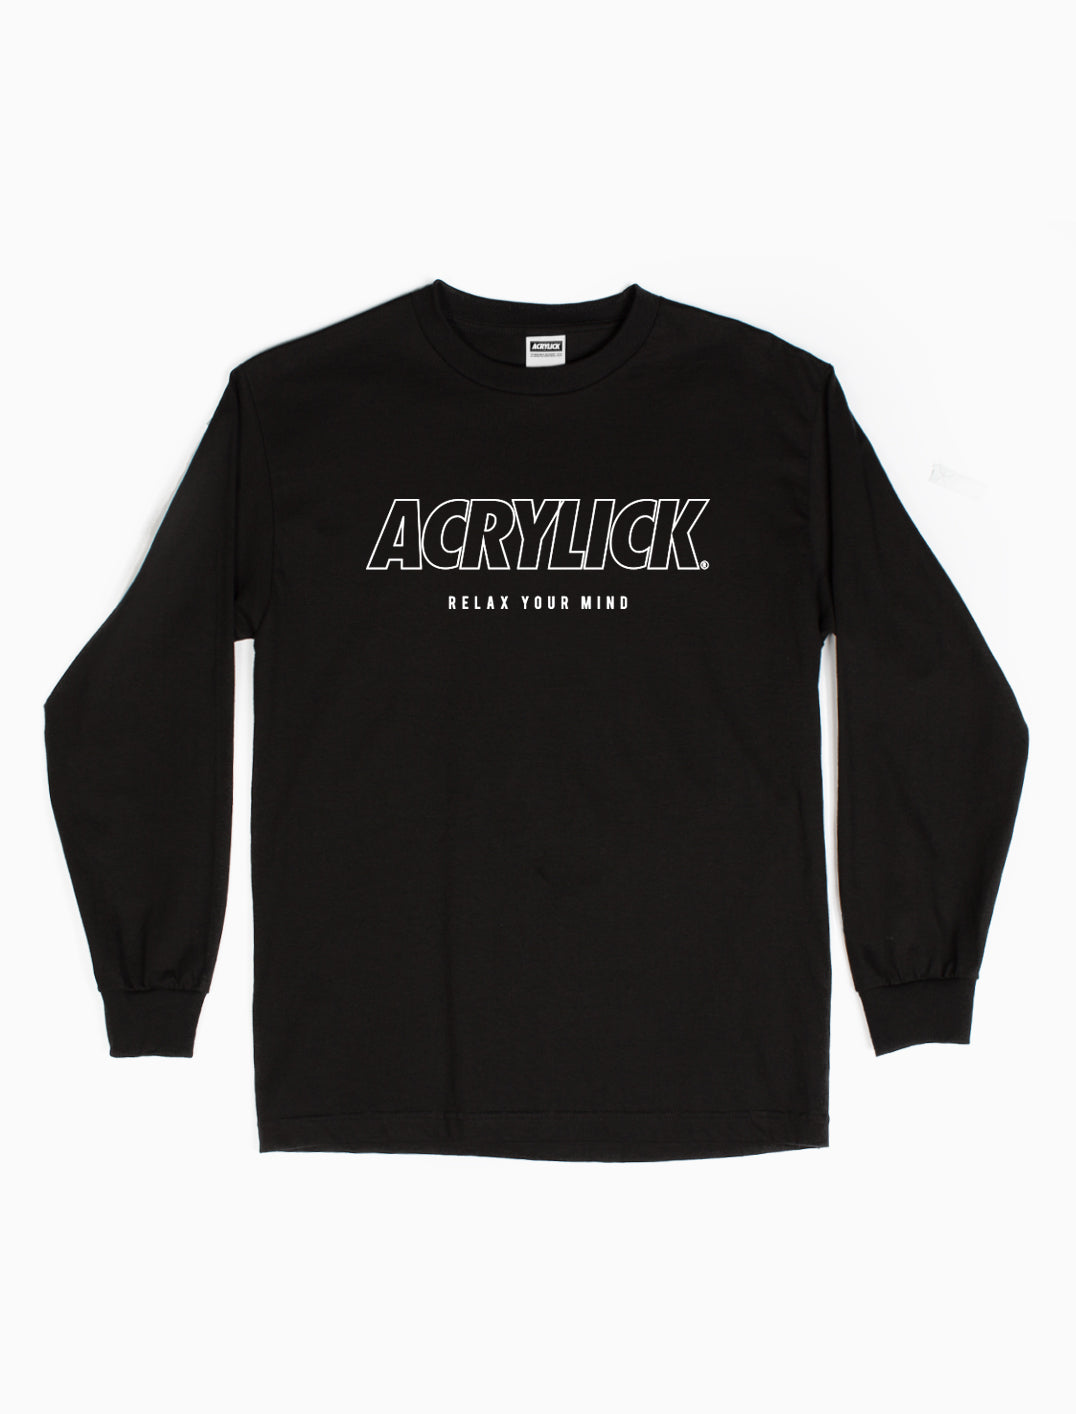 Acrylick - Blueprint - Long Sleeve Tee  (2142795464815)